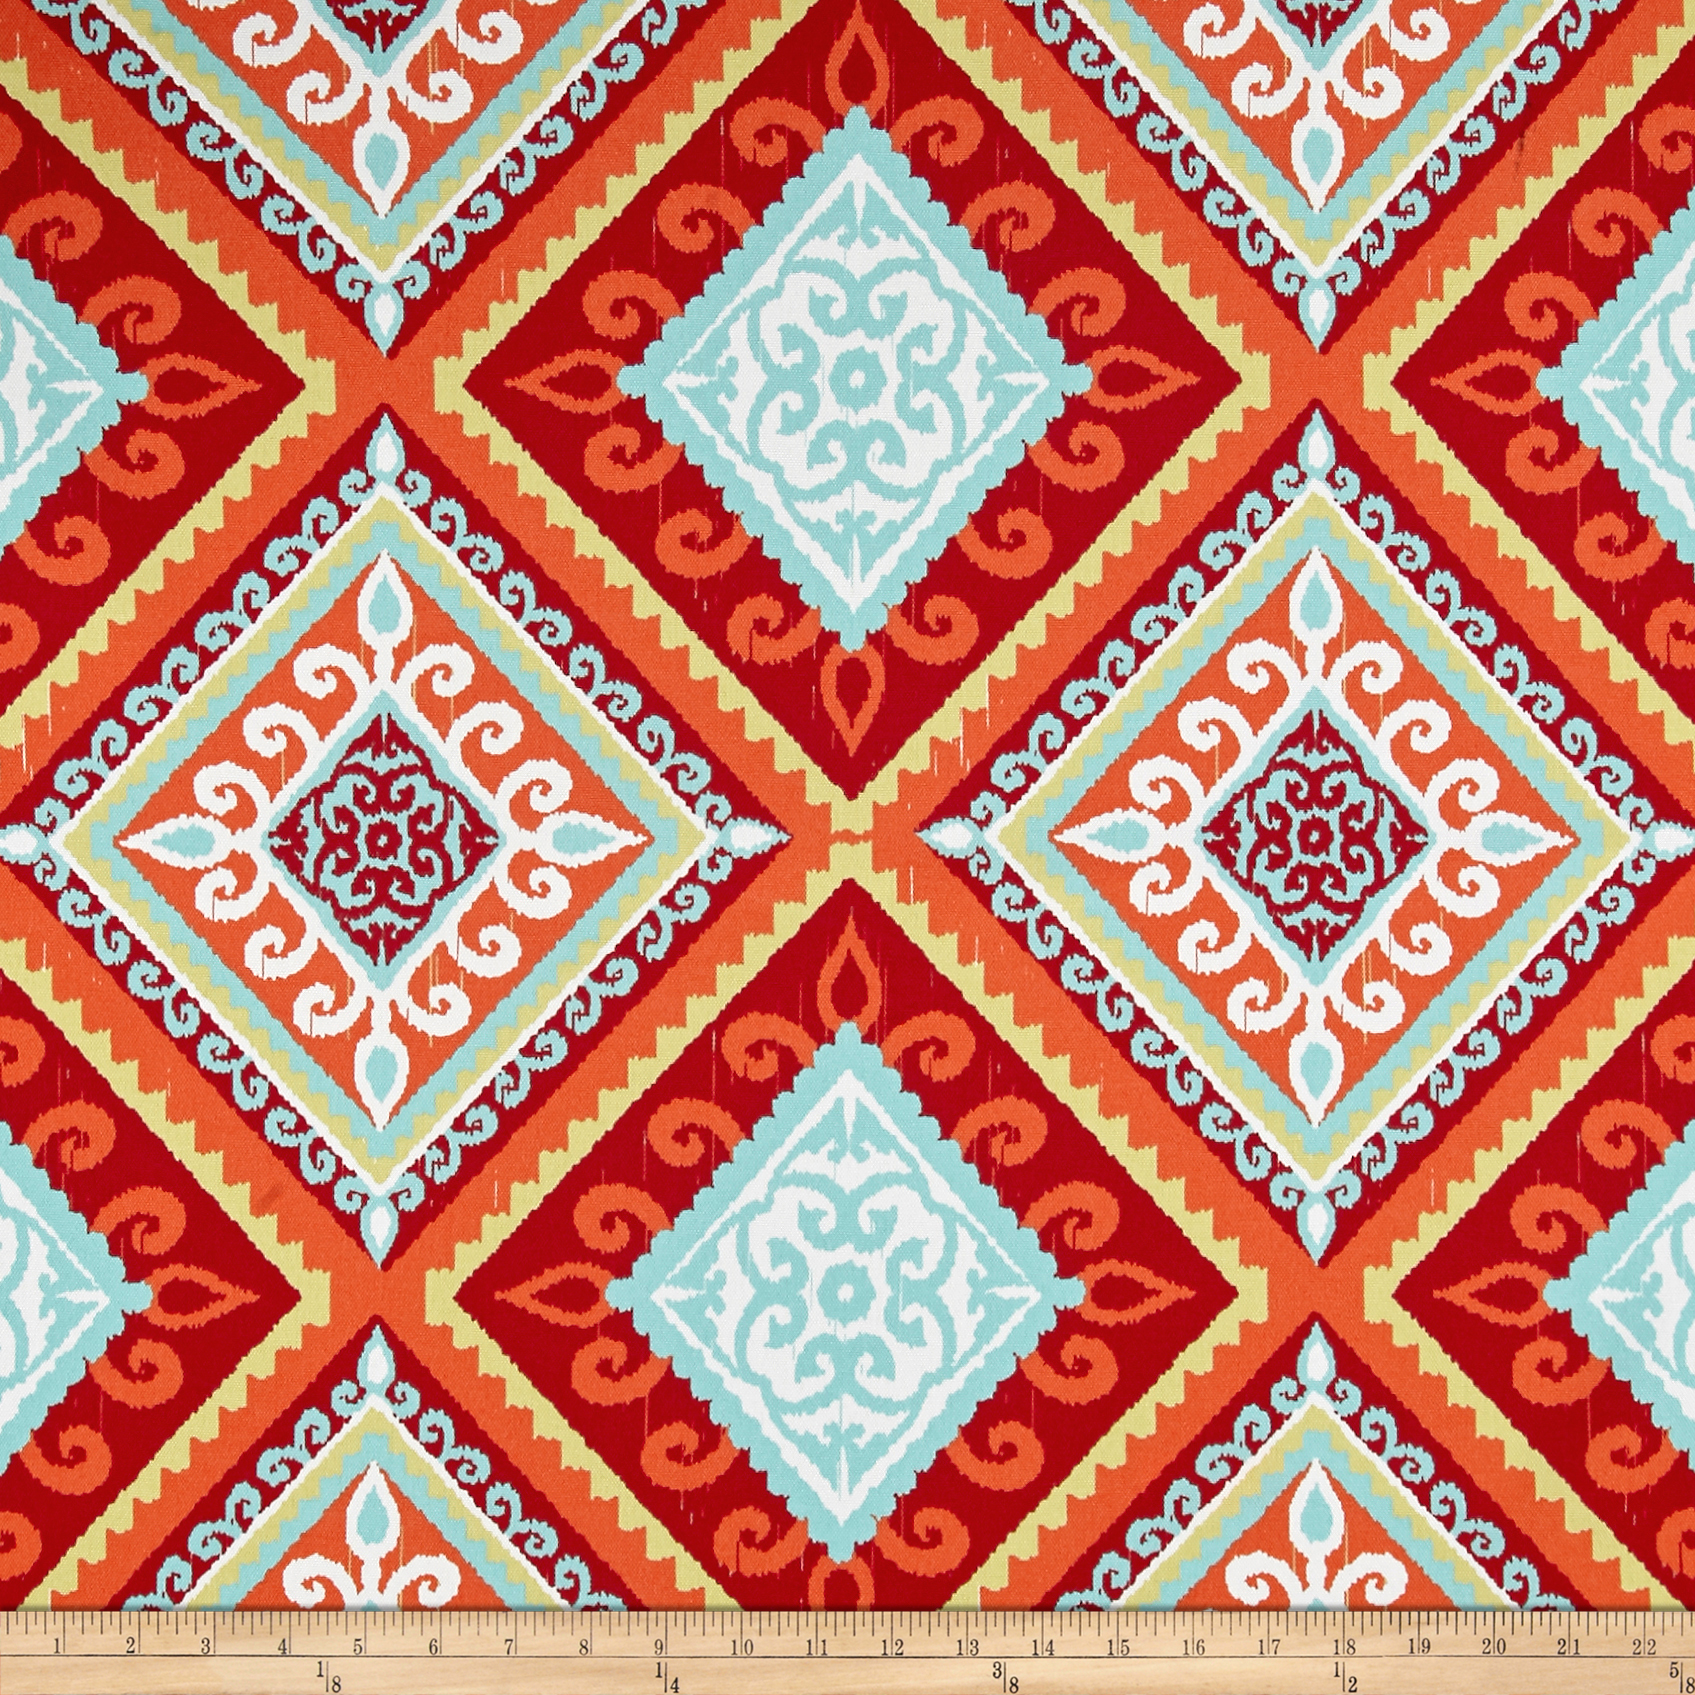 Terrasol Outdoor Spanish Tile Red/Orange Fabric by Tempro in USA